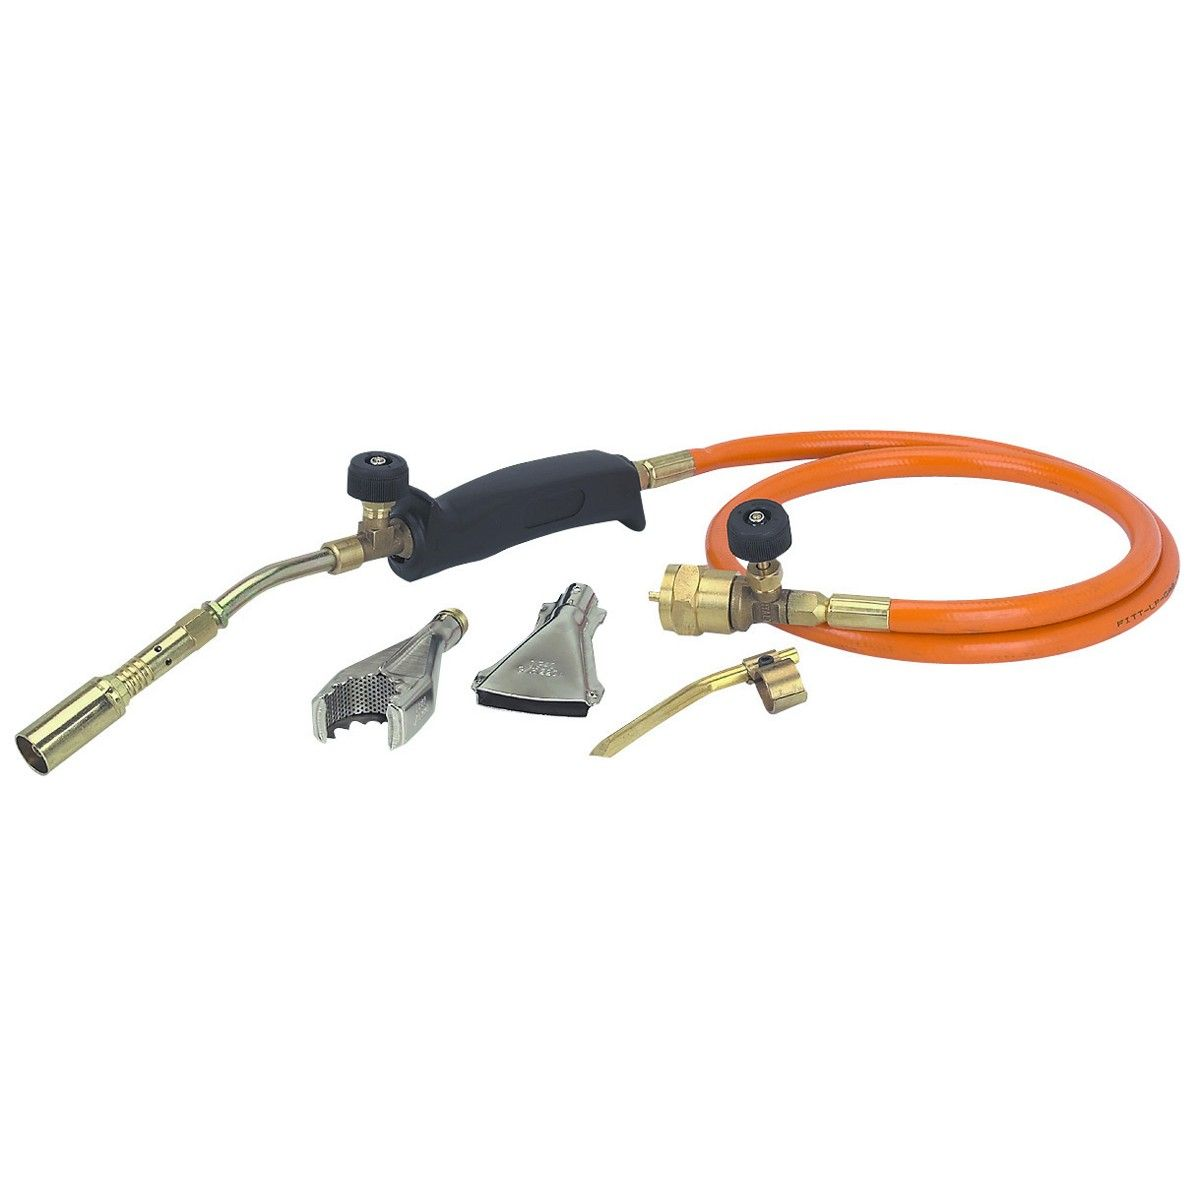 Propane Torch With Three Burners Brazing Welding Accessories Soldering Tools